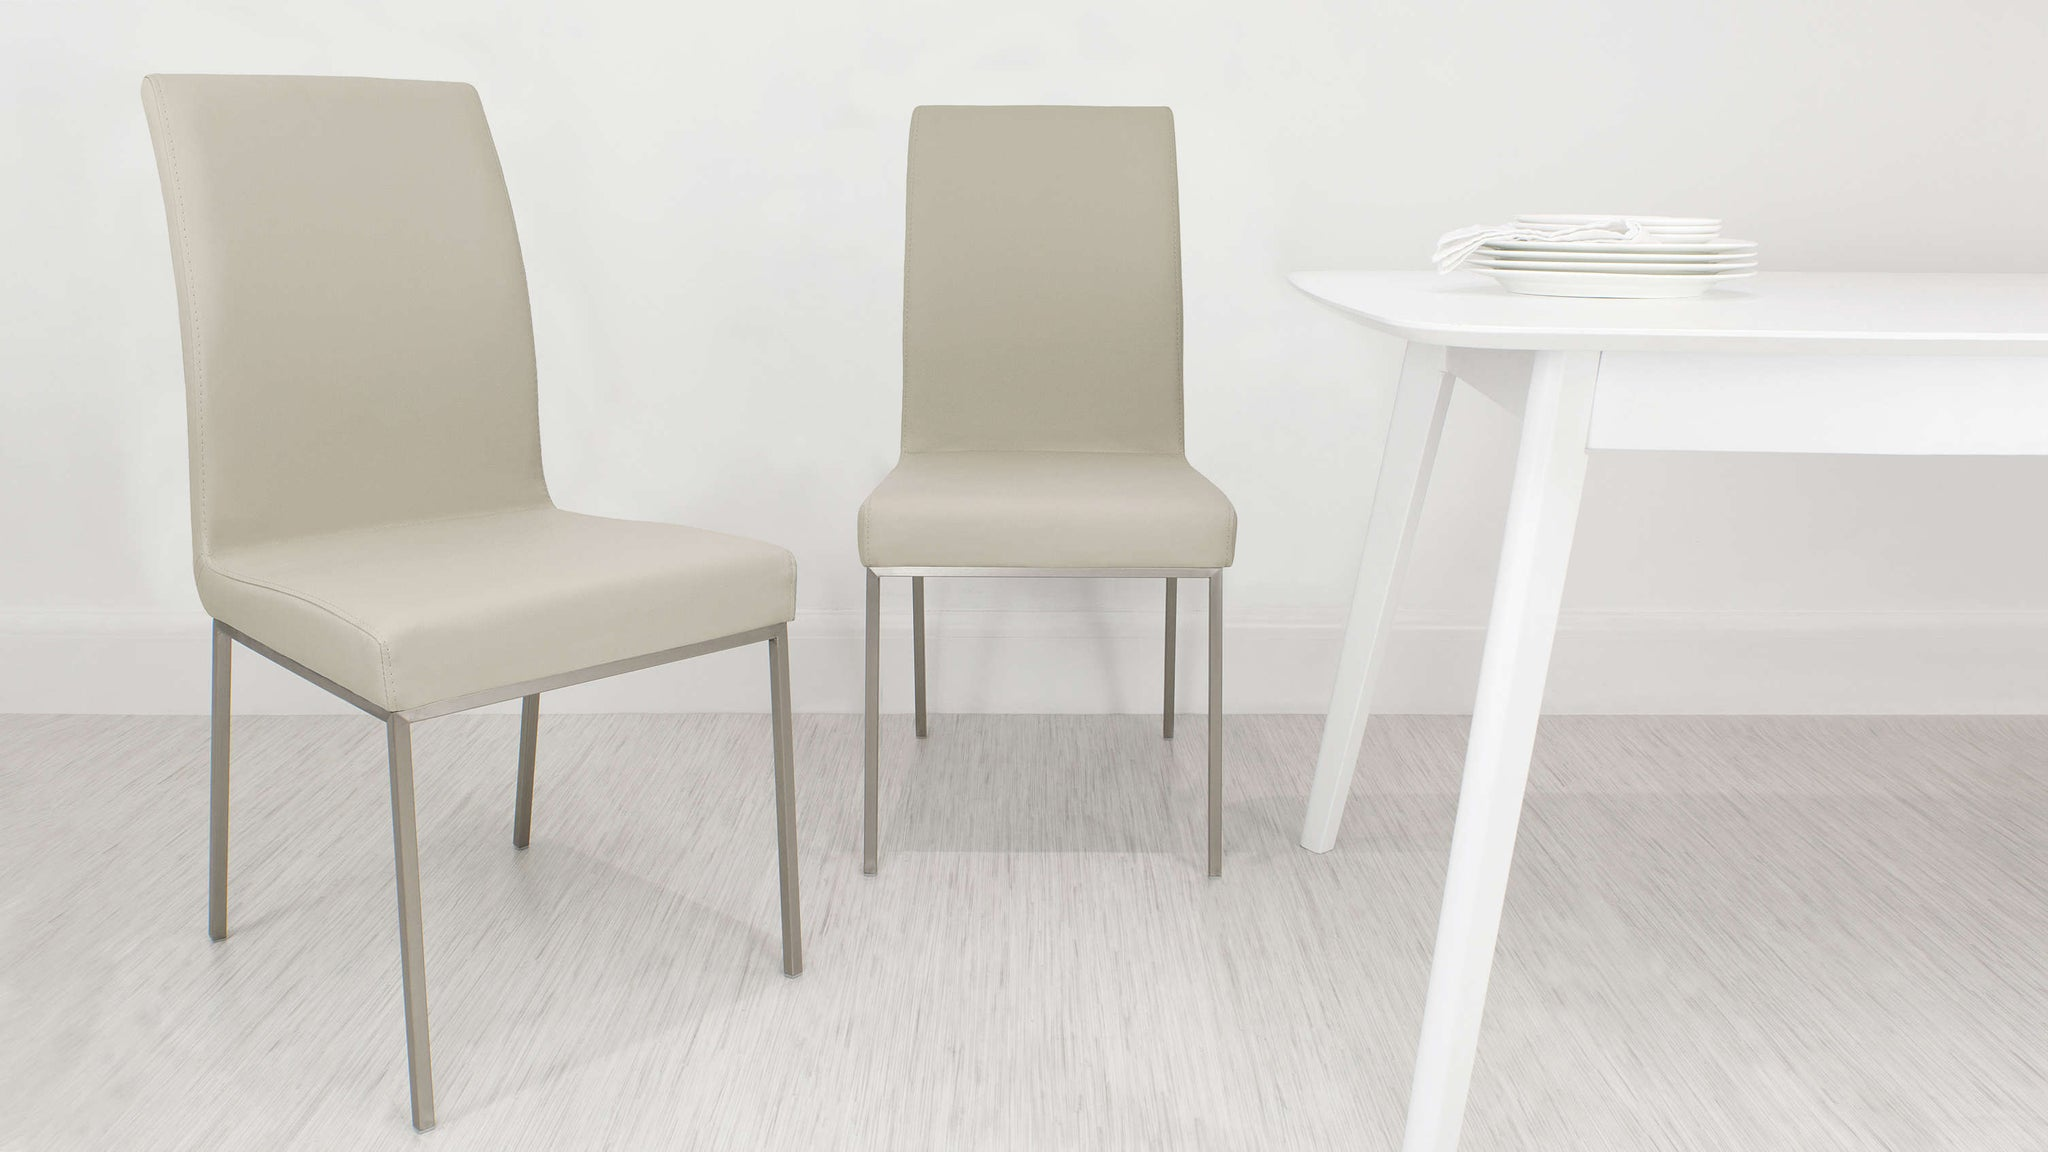 Brushed Metal Legged Dining Chair in Beige